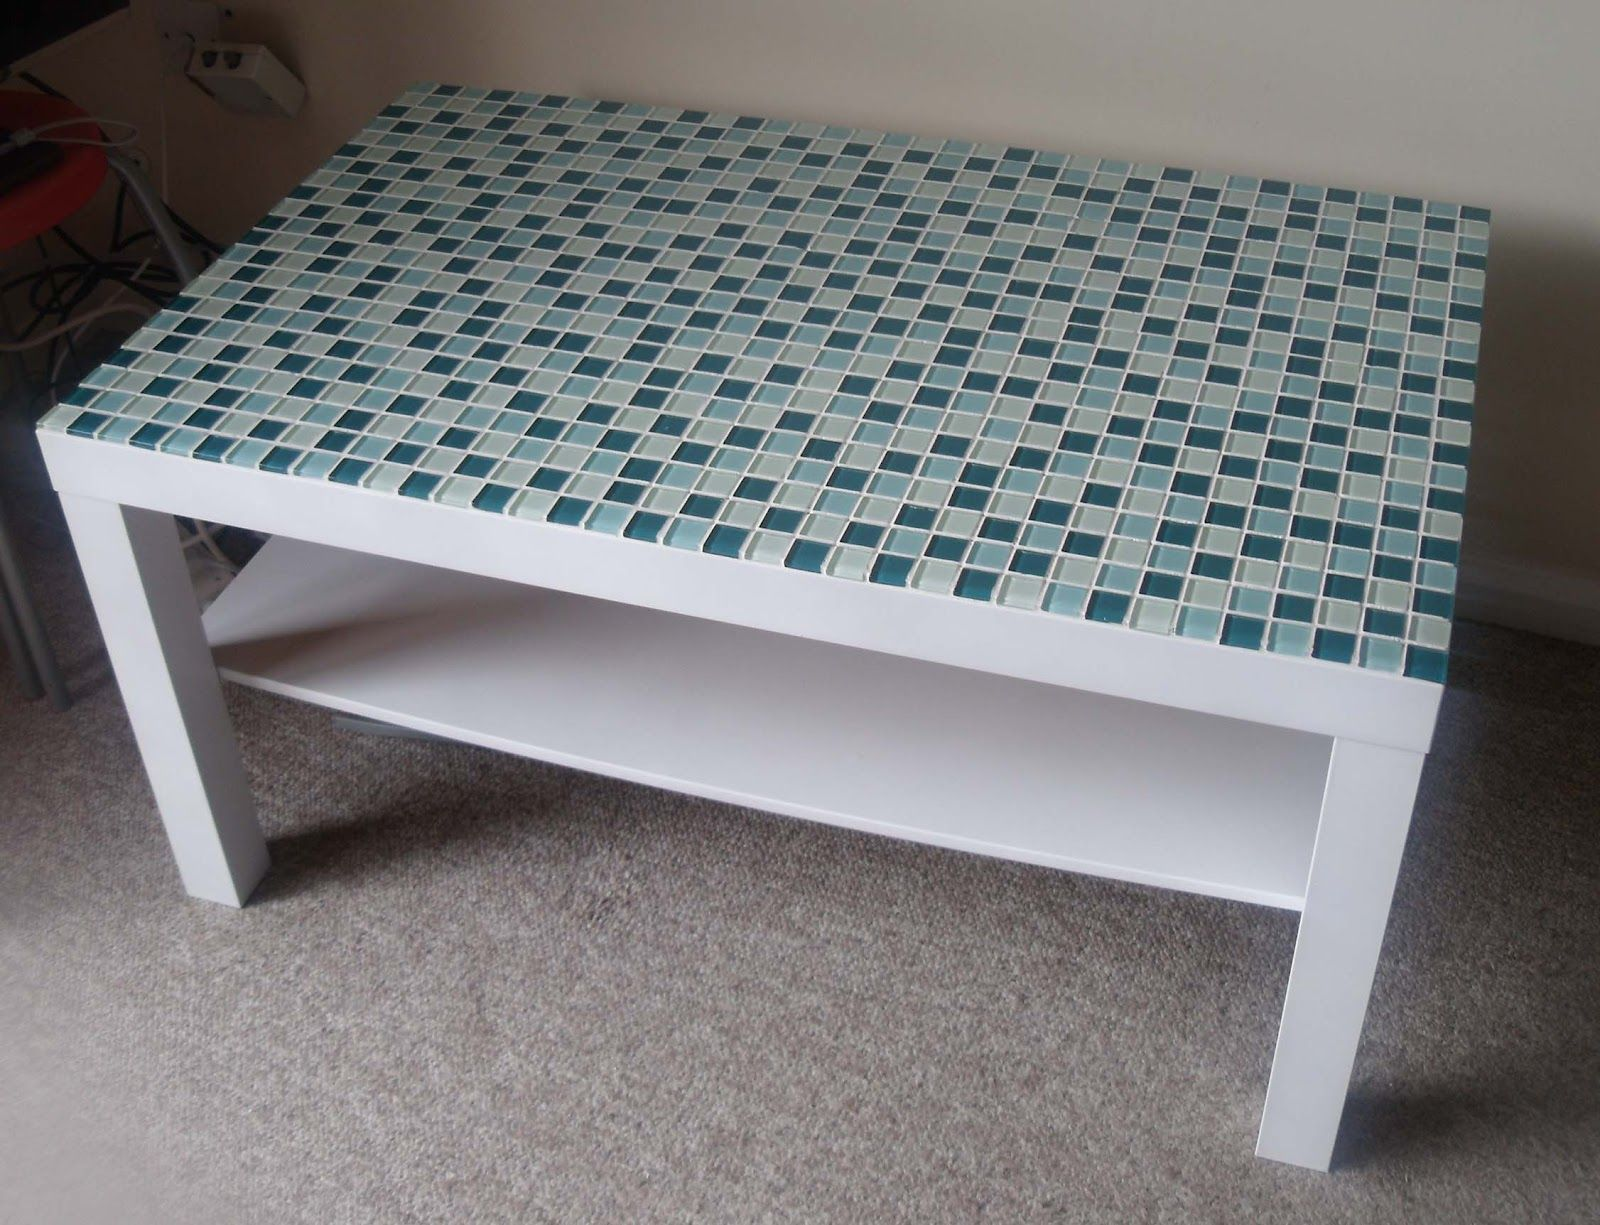 Ikea coffee table reno with backsplash tiles genius but for Tile coffee table